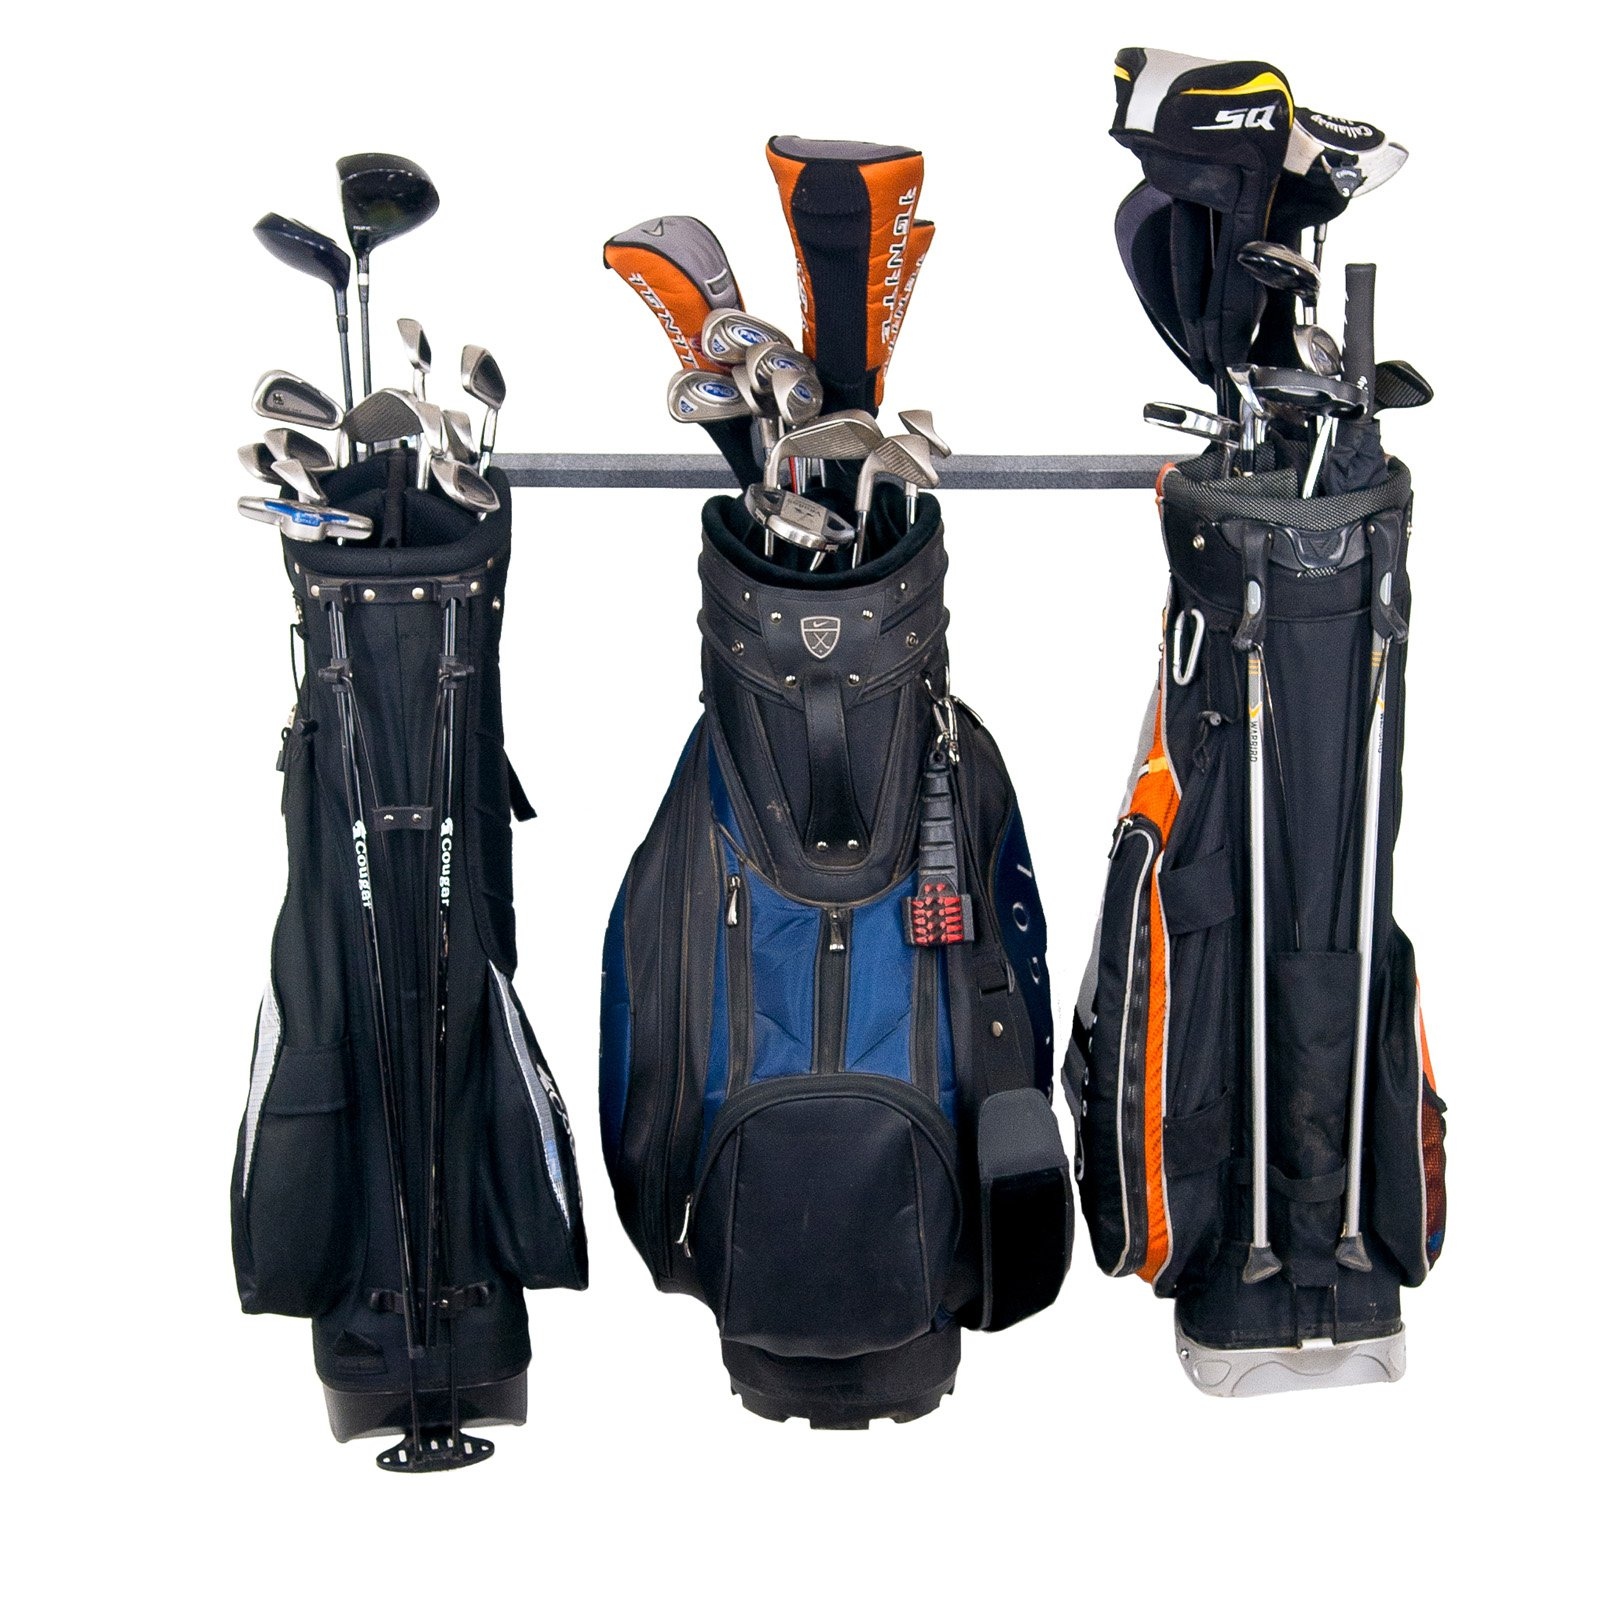 Monkey Bar Storage Small 3 Golf Bag Rack